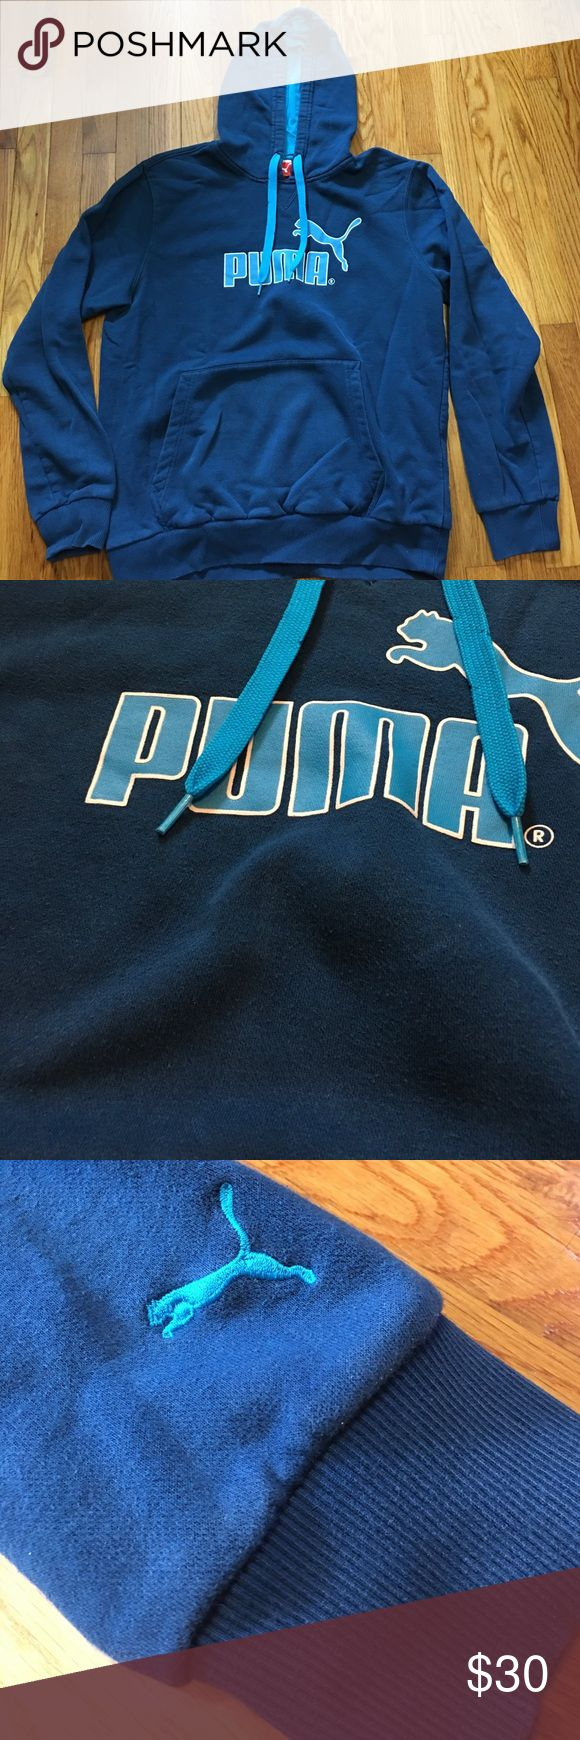 Puma blue men's hoodie Blue hoodie, see pictures, small, what I'm assuming to be, bleach stain above puma logo Puma Shirts Sweatshirts & Hoodies